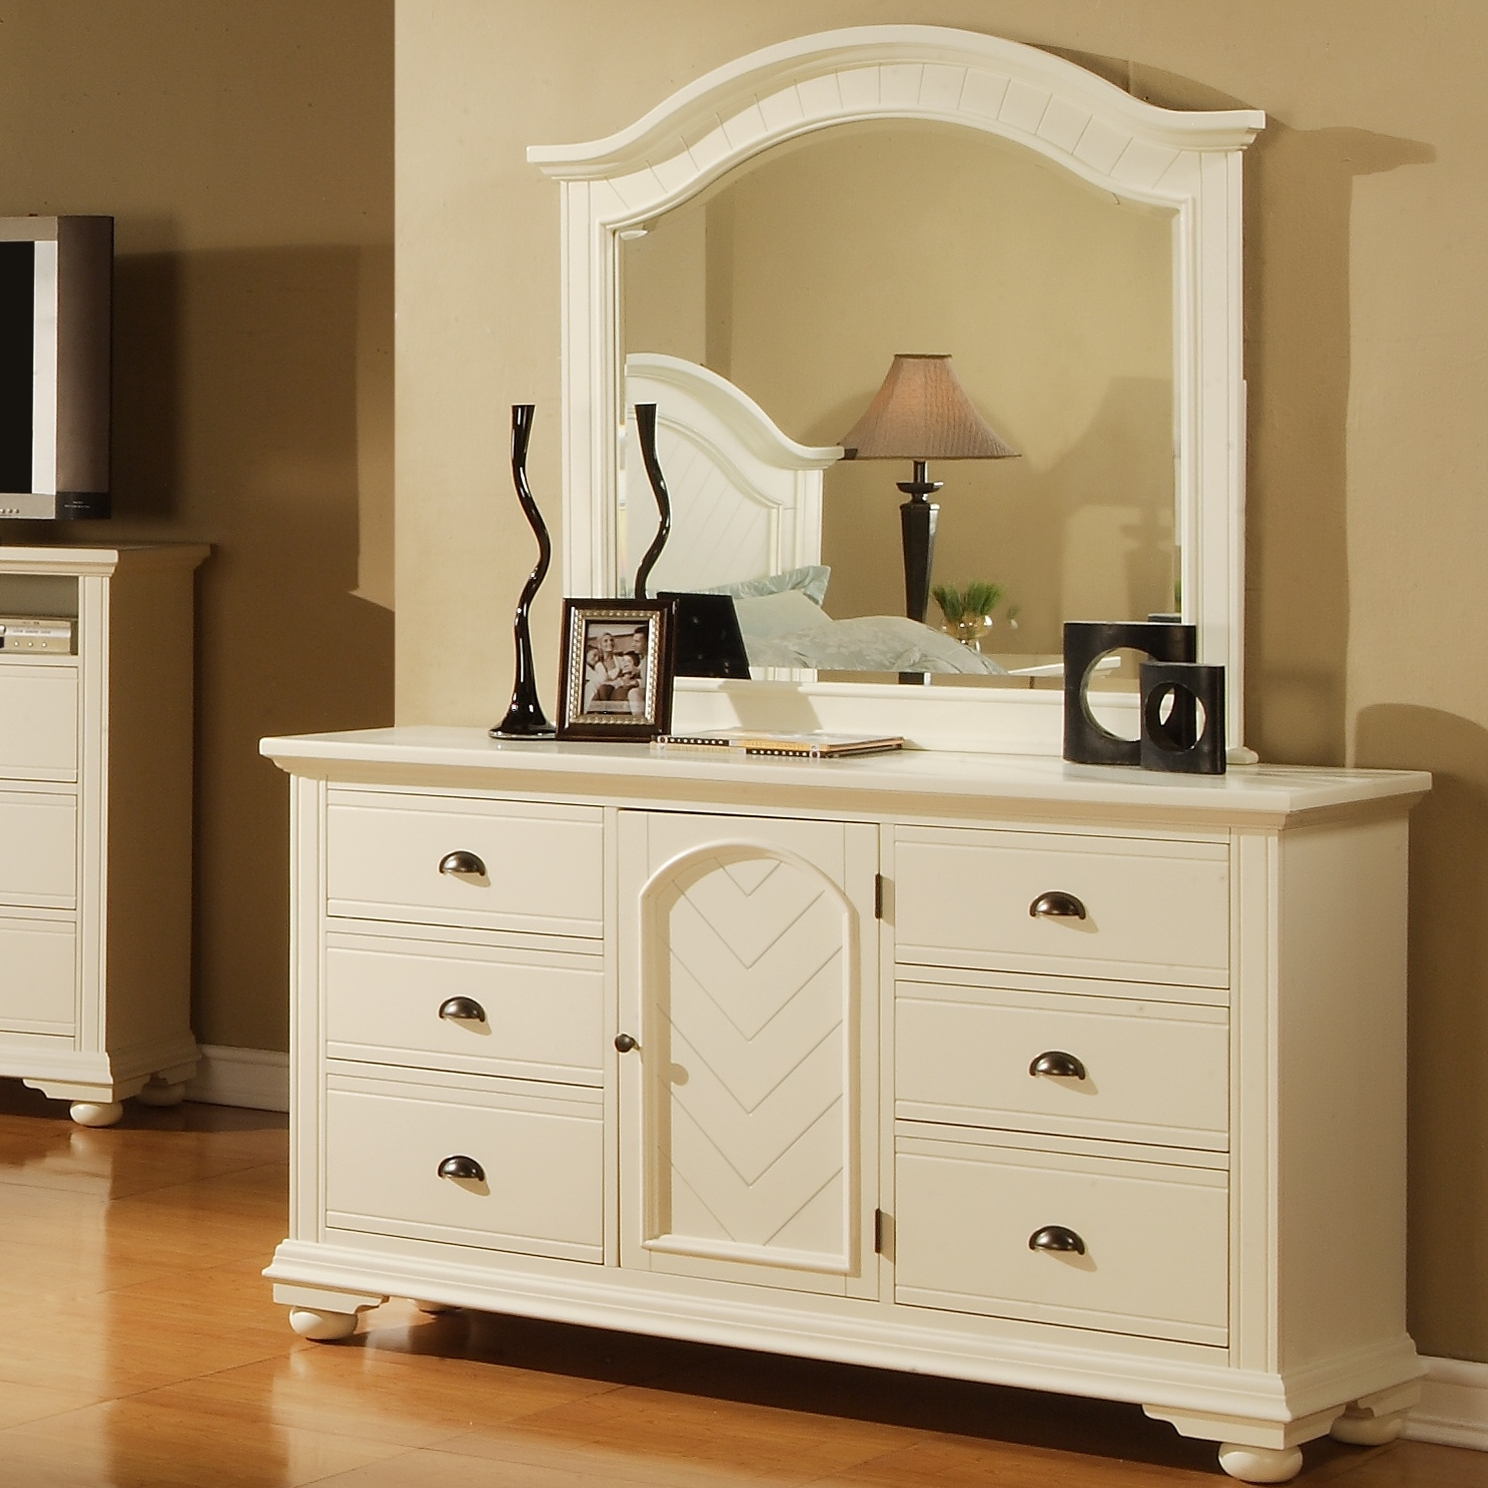 Image of: White Dresser With Mirror Ideas